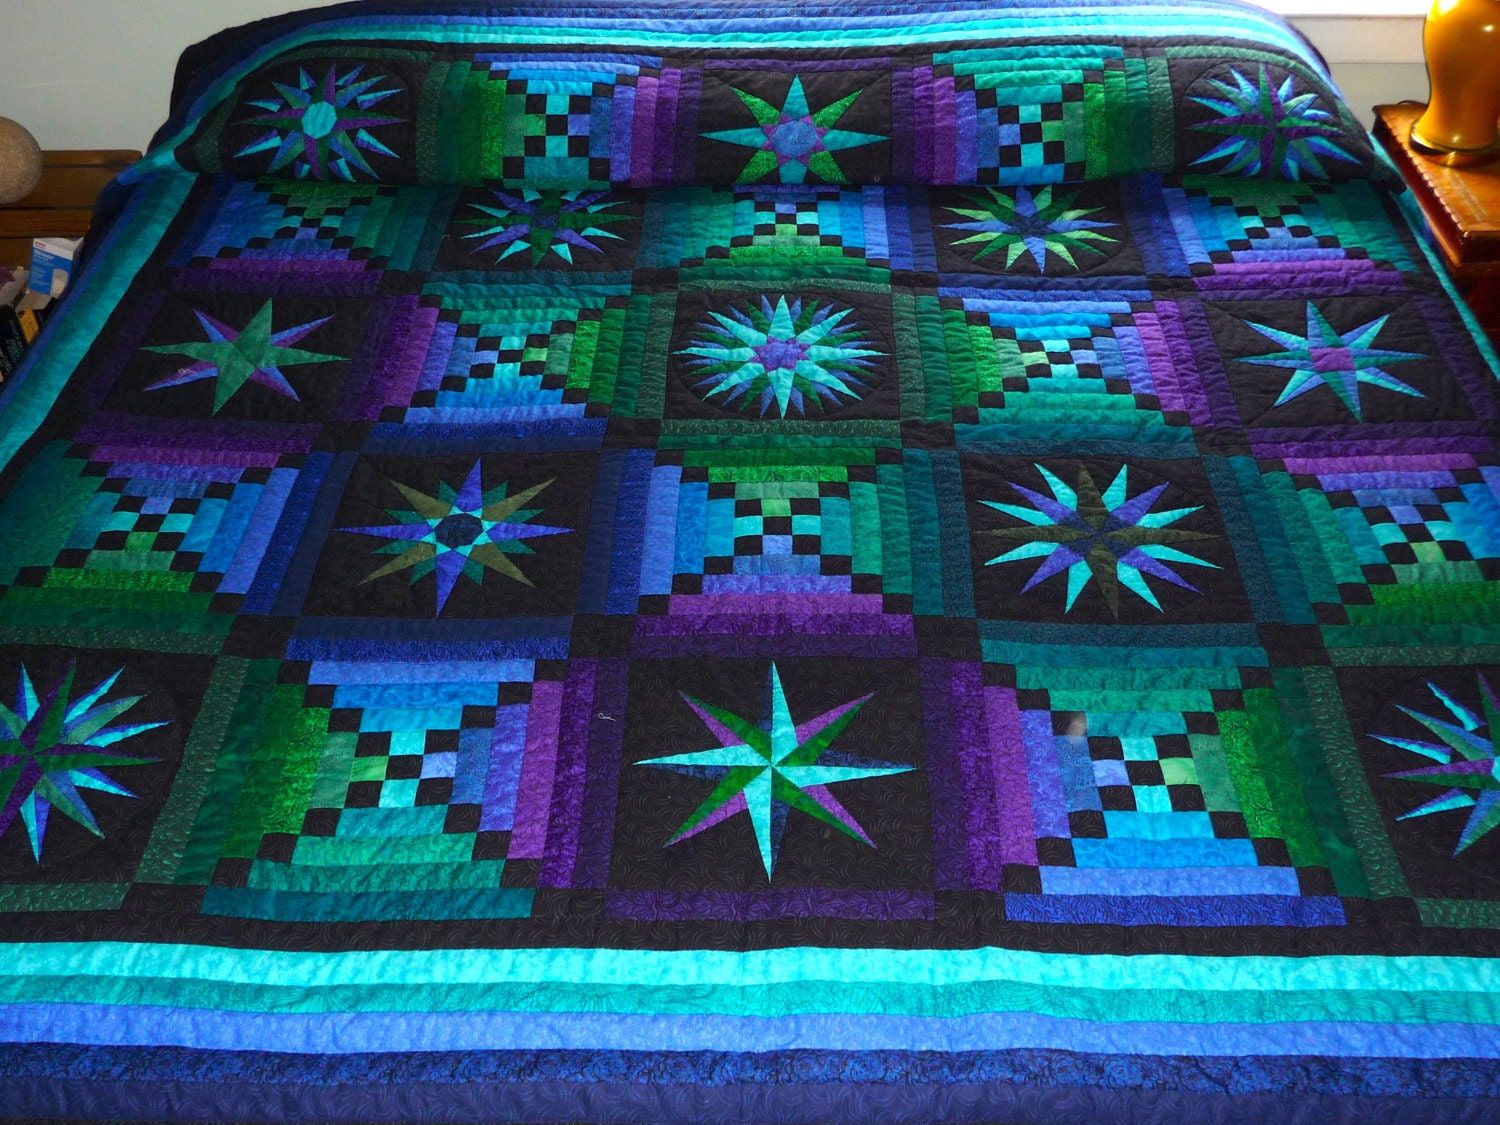 Moon Glow Quilt Amish Made Quilt In Amazing Colors